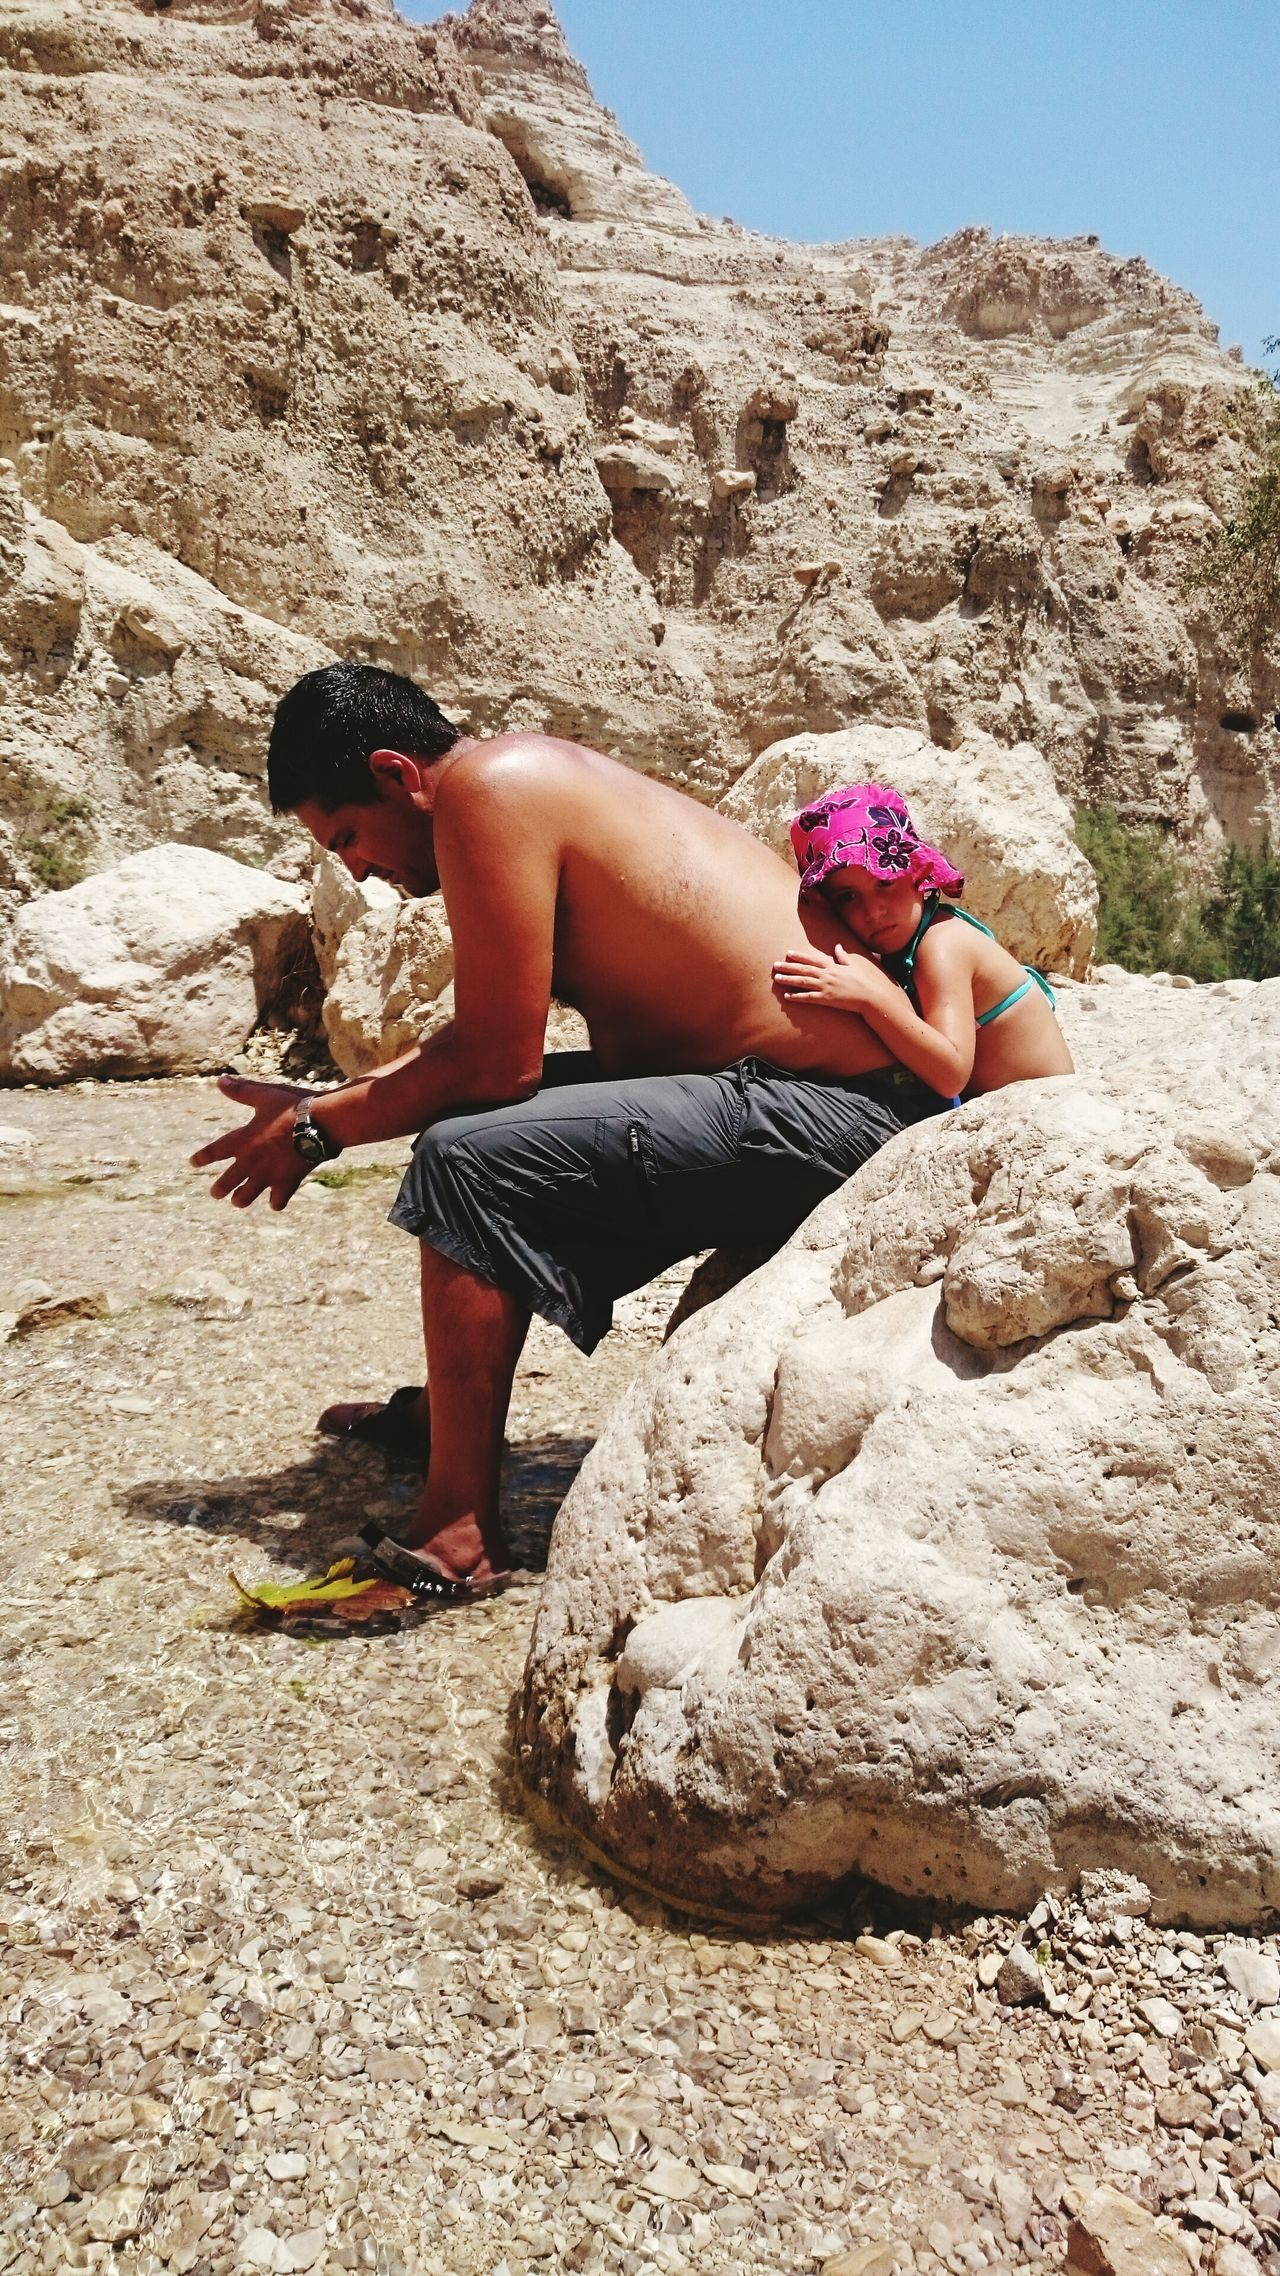 Daughter leaning over father while sitting on rock during sunny day